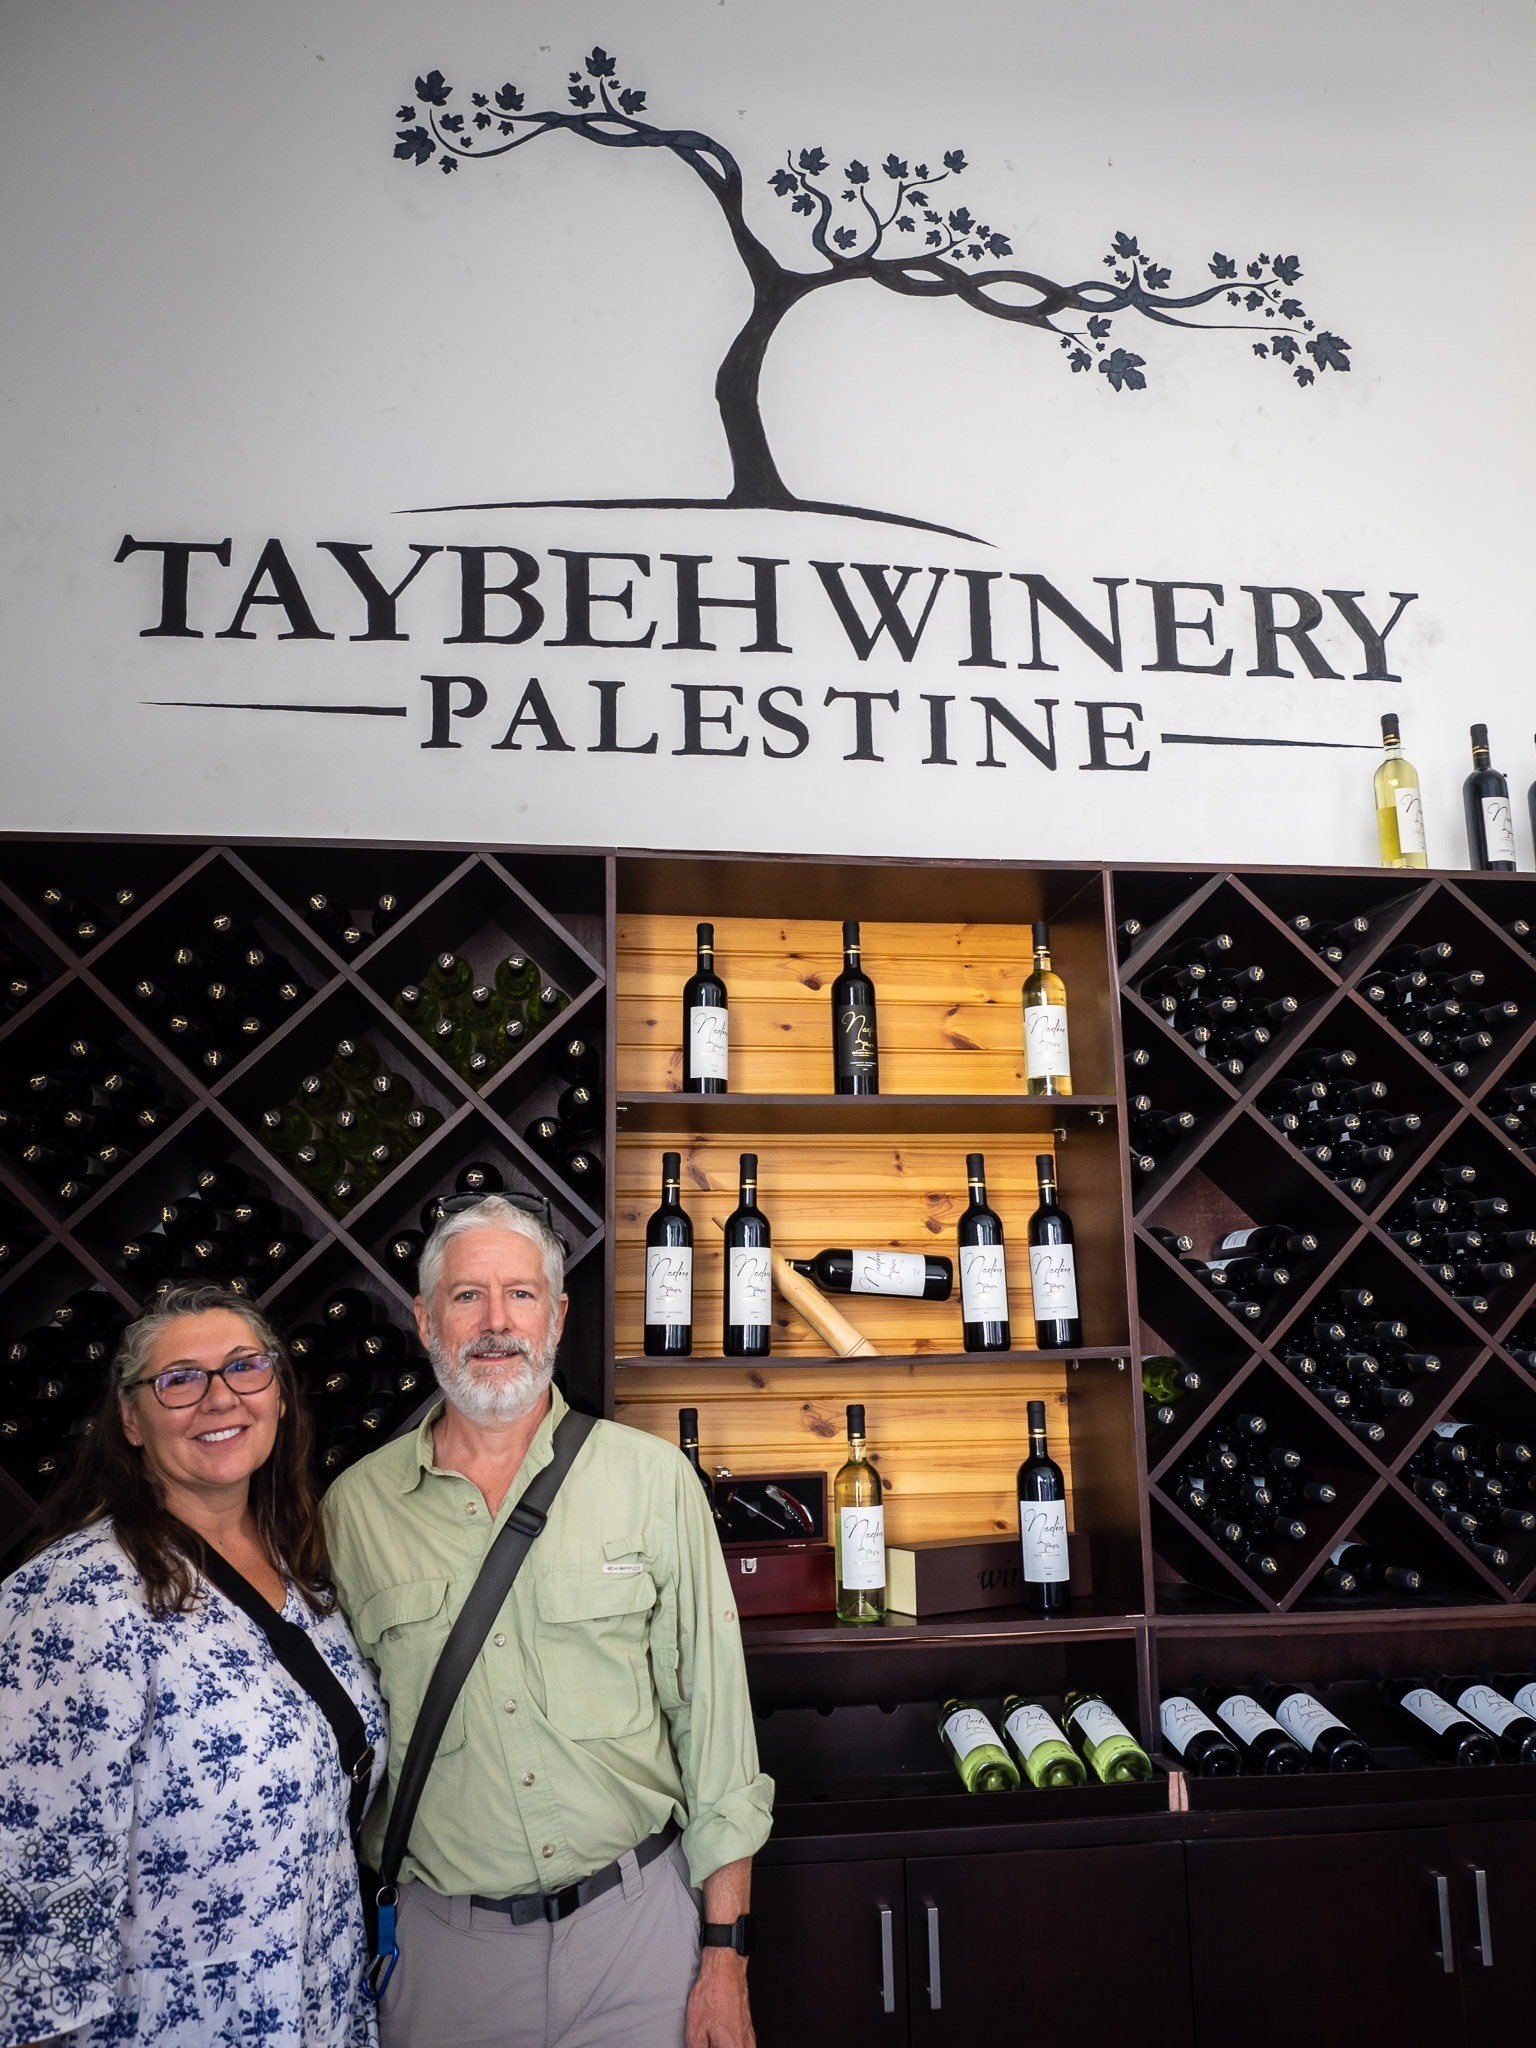 The Winery in Taybeh